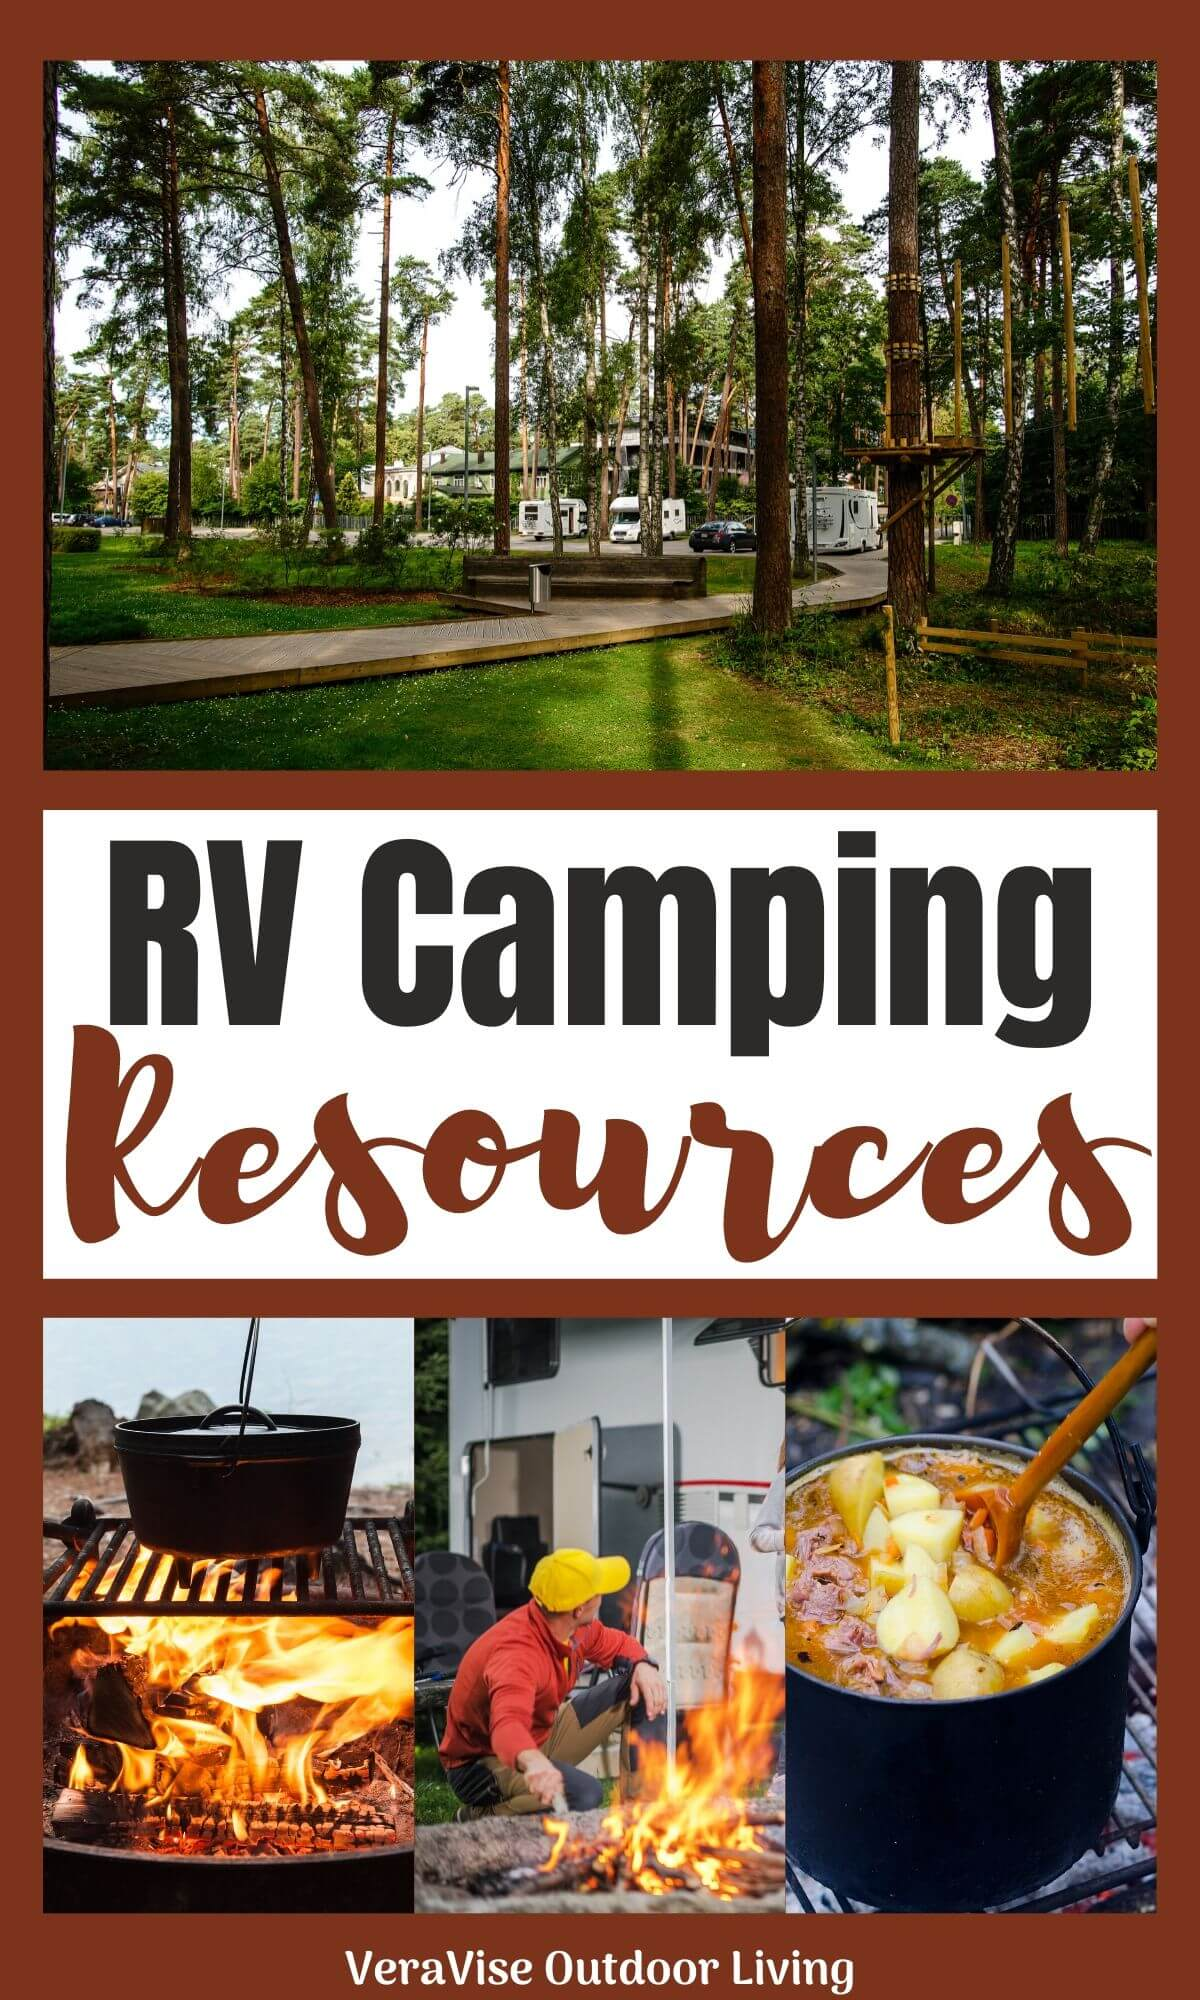 RV camping resources